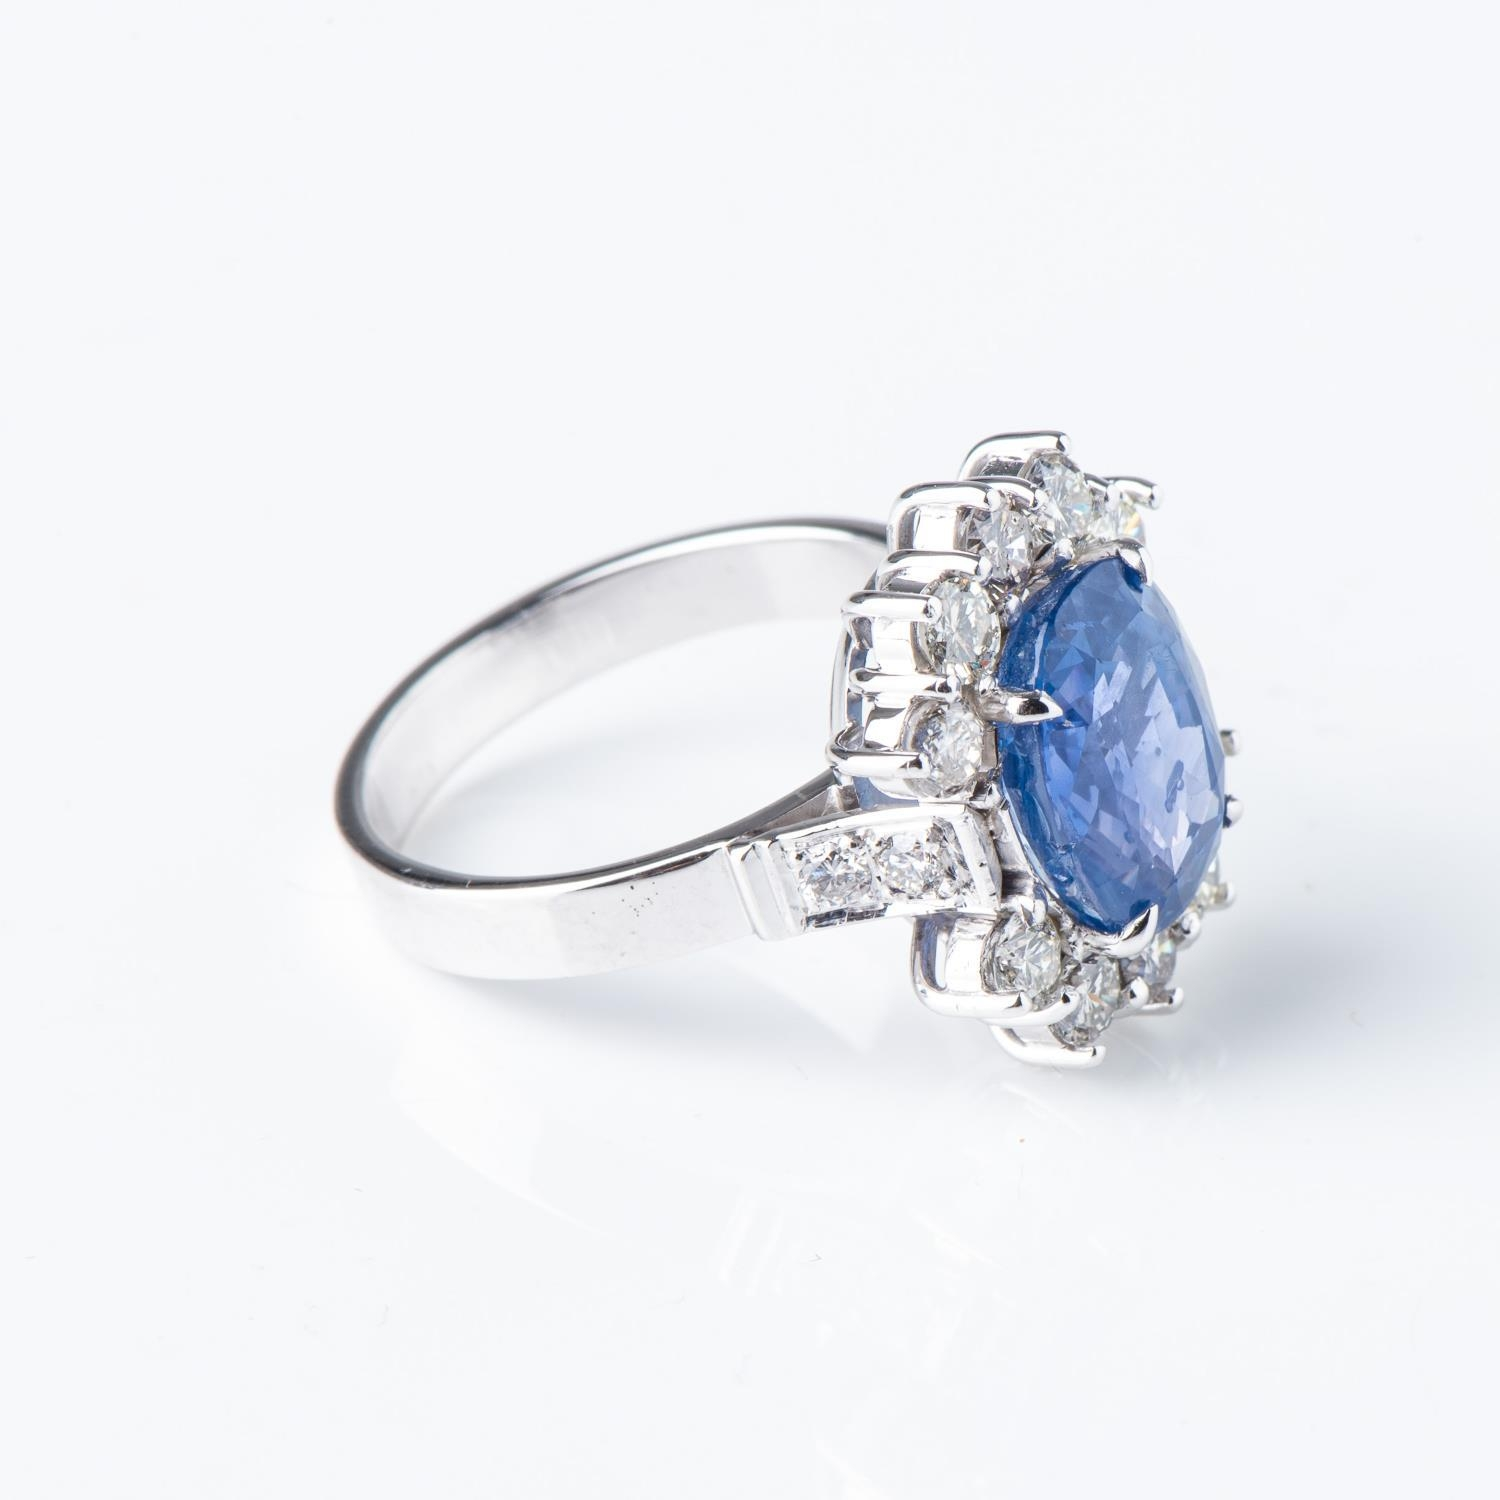 A SAPPHIRE AND DIAMOND RING - Image 2 of 3